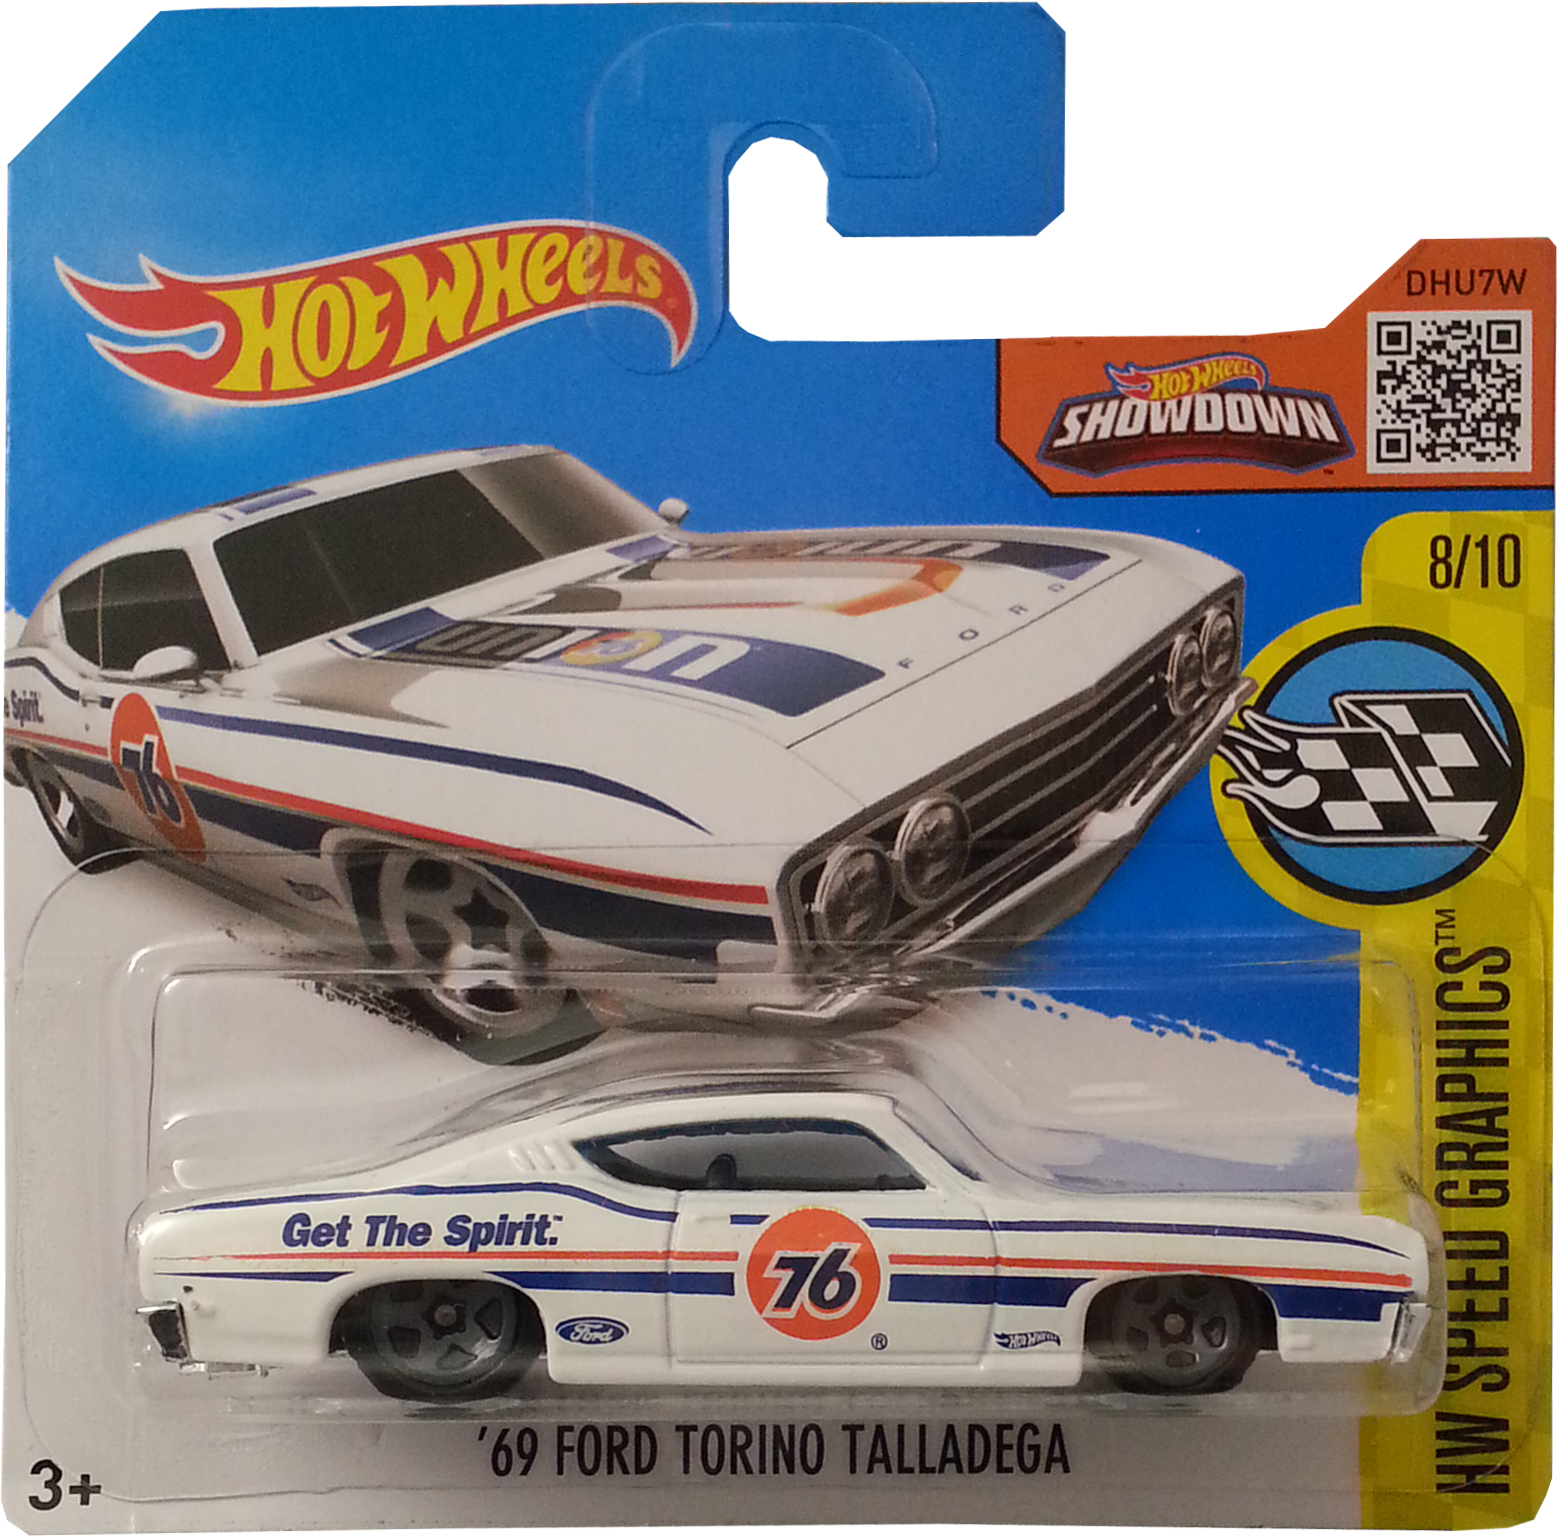 Ford Torino Talladega Package Front Png